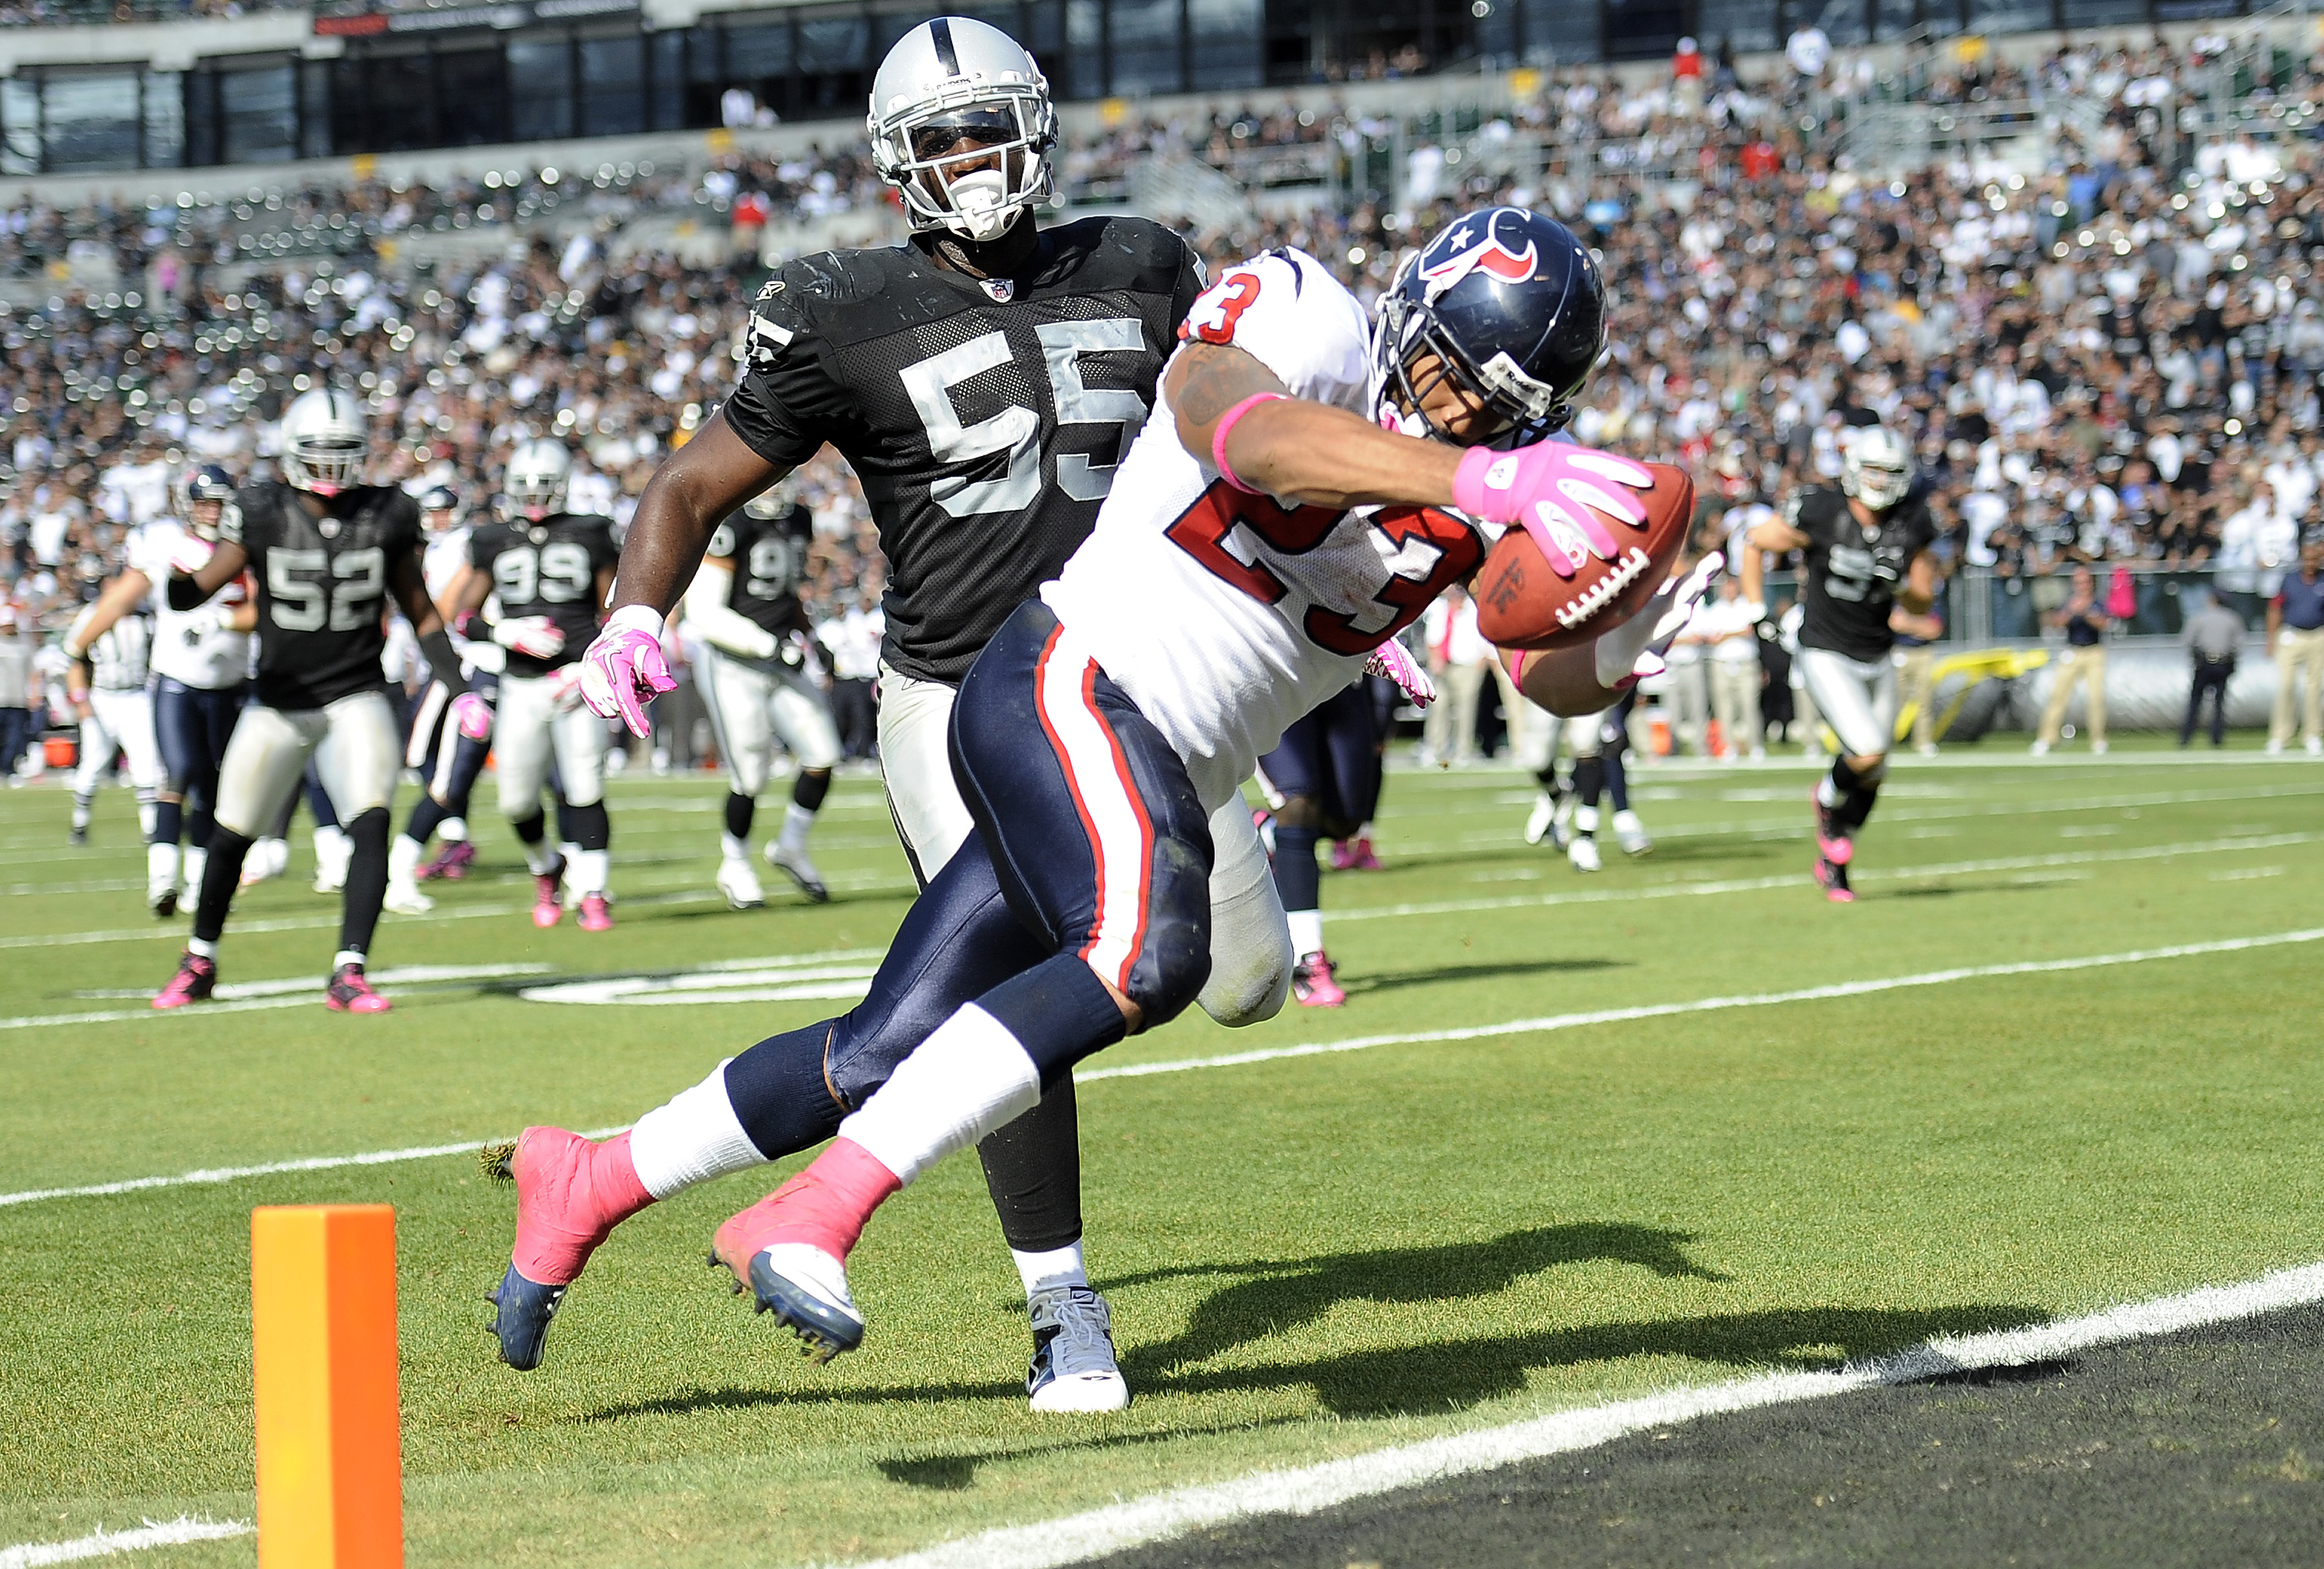 OAKLAND, CA - OCTOBER 3:  Running back Arian Foster #23 of the Houston Texans scores a touchdown in front of linebacker Rolando McClain #55 of the Oakland Raiders  during an NFL football game October 3, 2010 at The Oakland-Alameda County Coliseum in Oakla